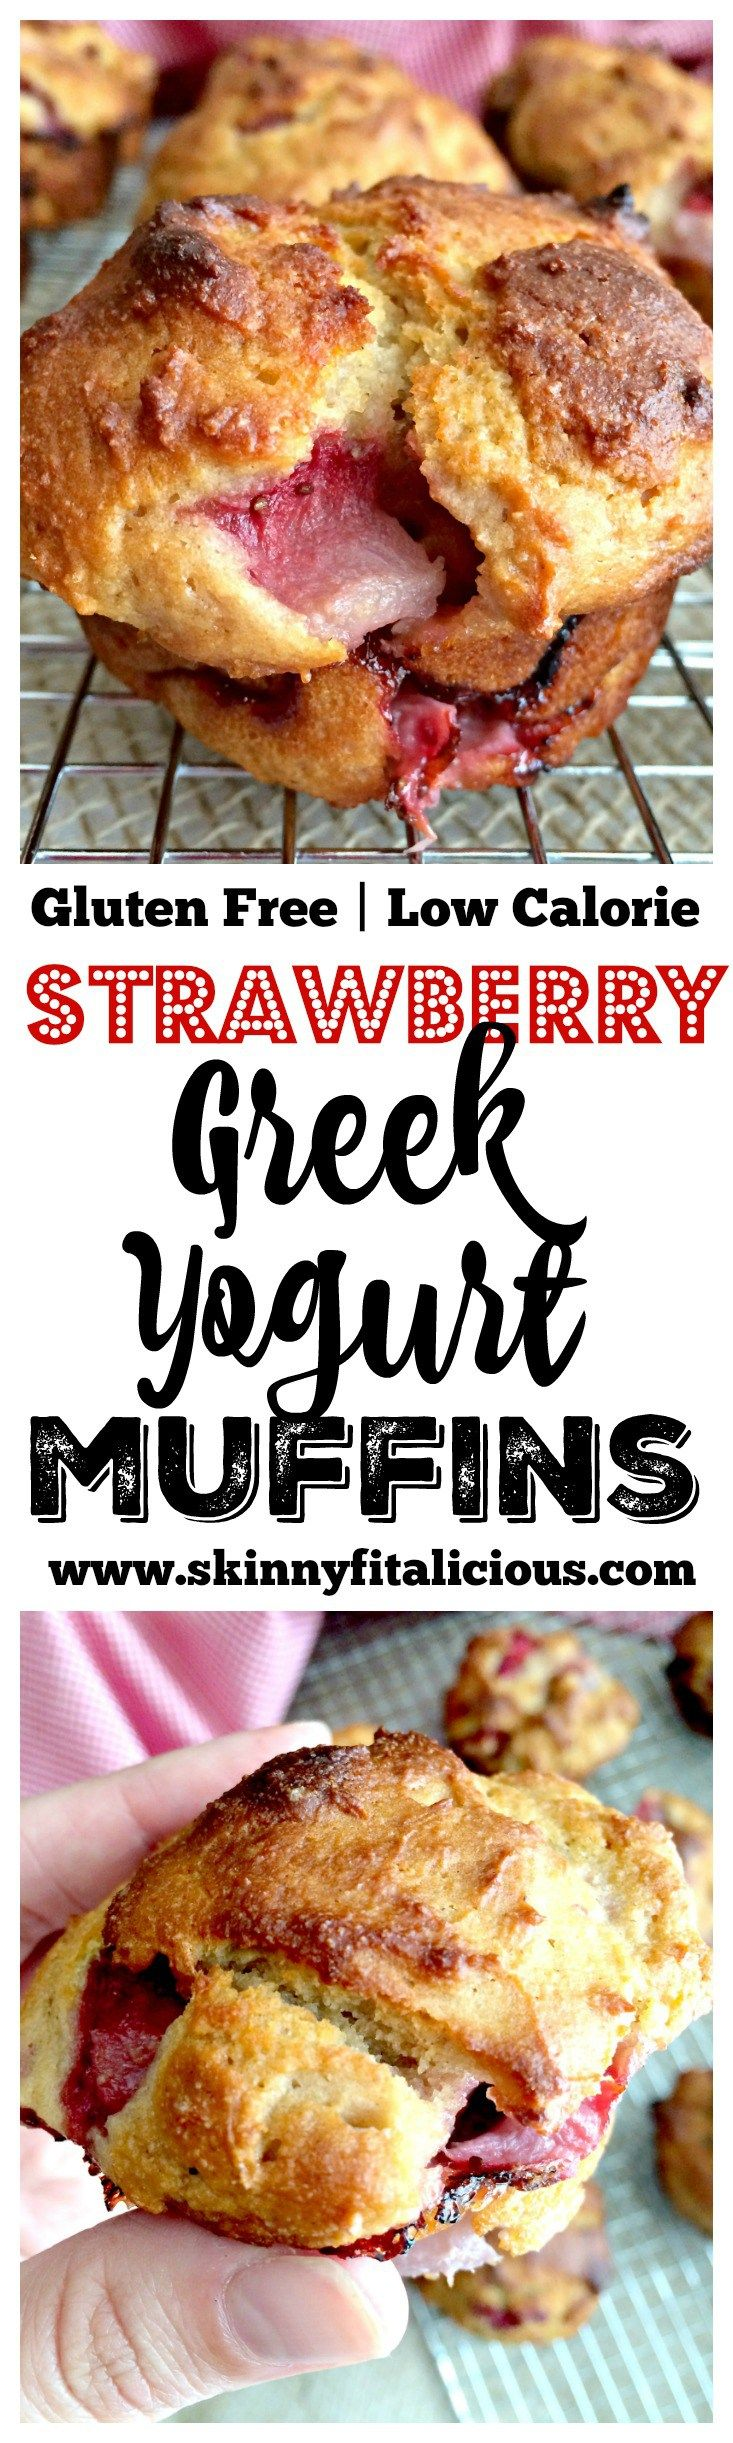 Bursting with strawberries and creamy greek yogurt, these Strawberry Greek Yogurt Muffins make a delicious low fat snack for just 95 calories. Gluten Free + Low Calorie